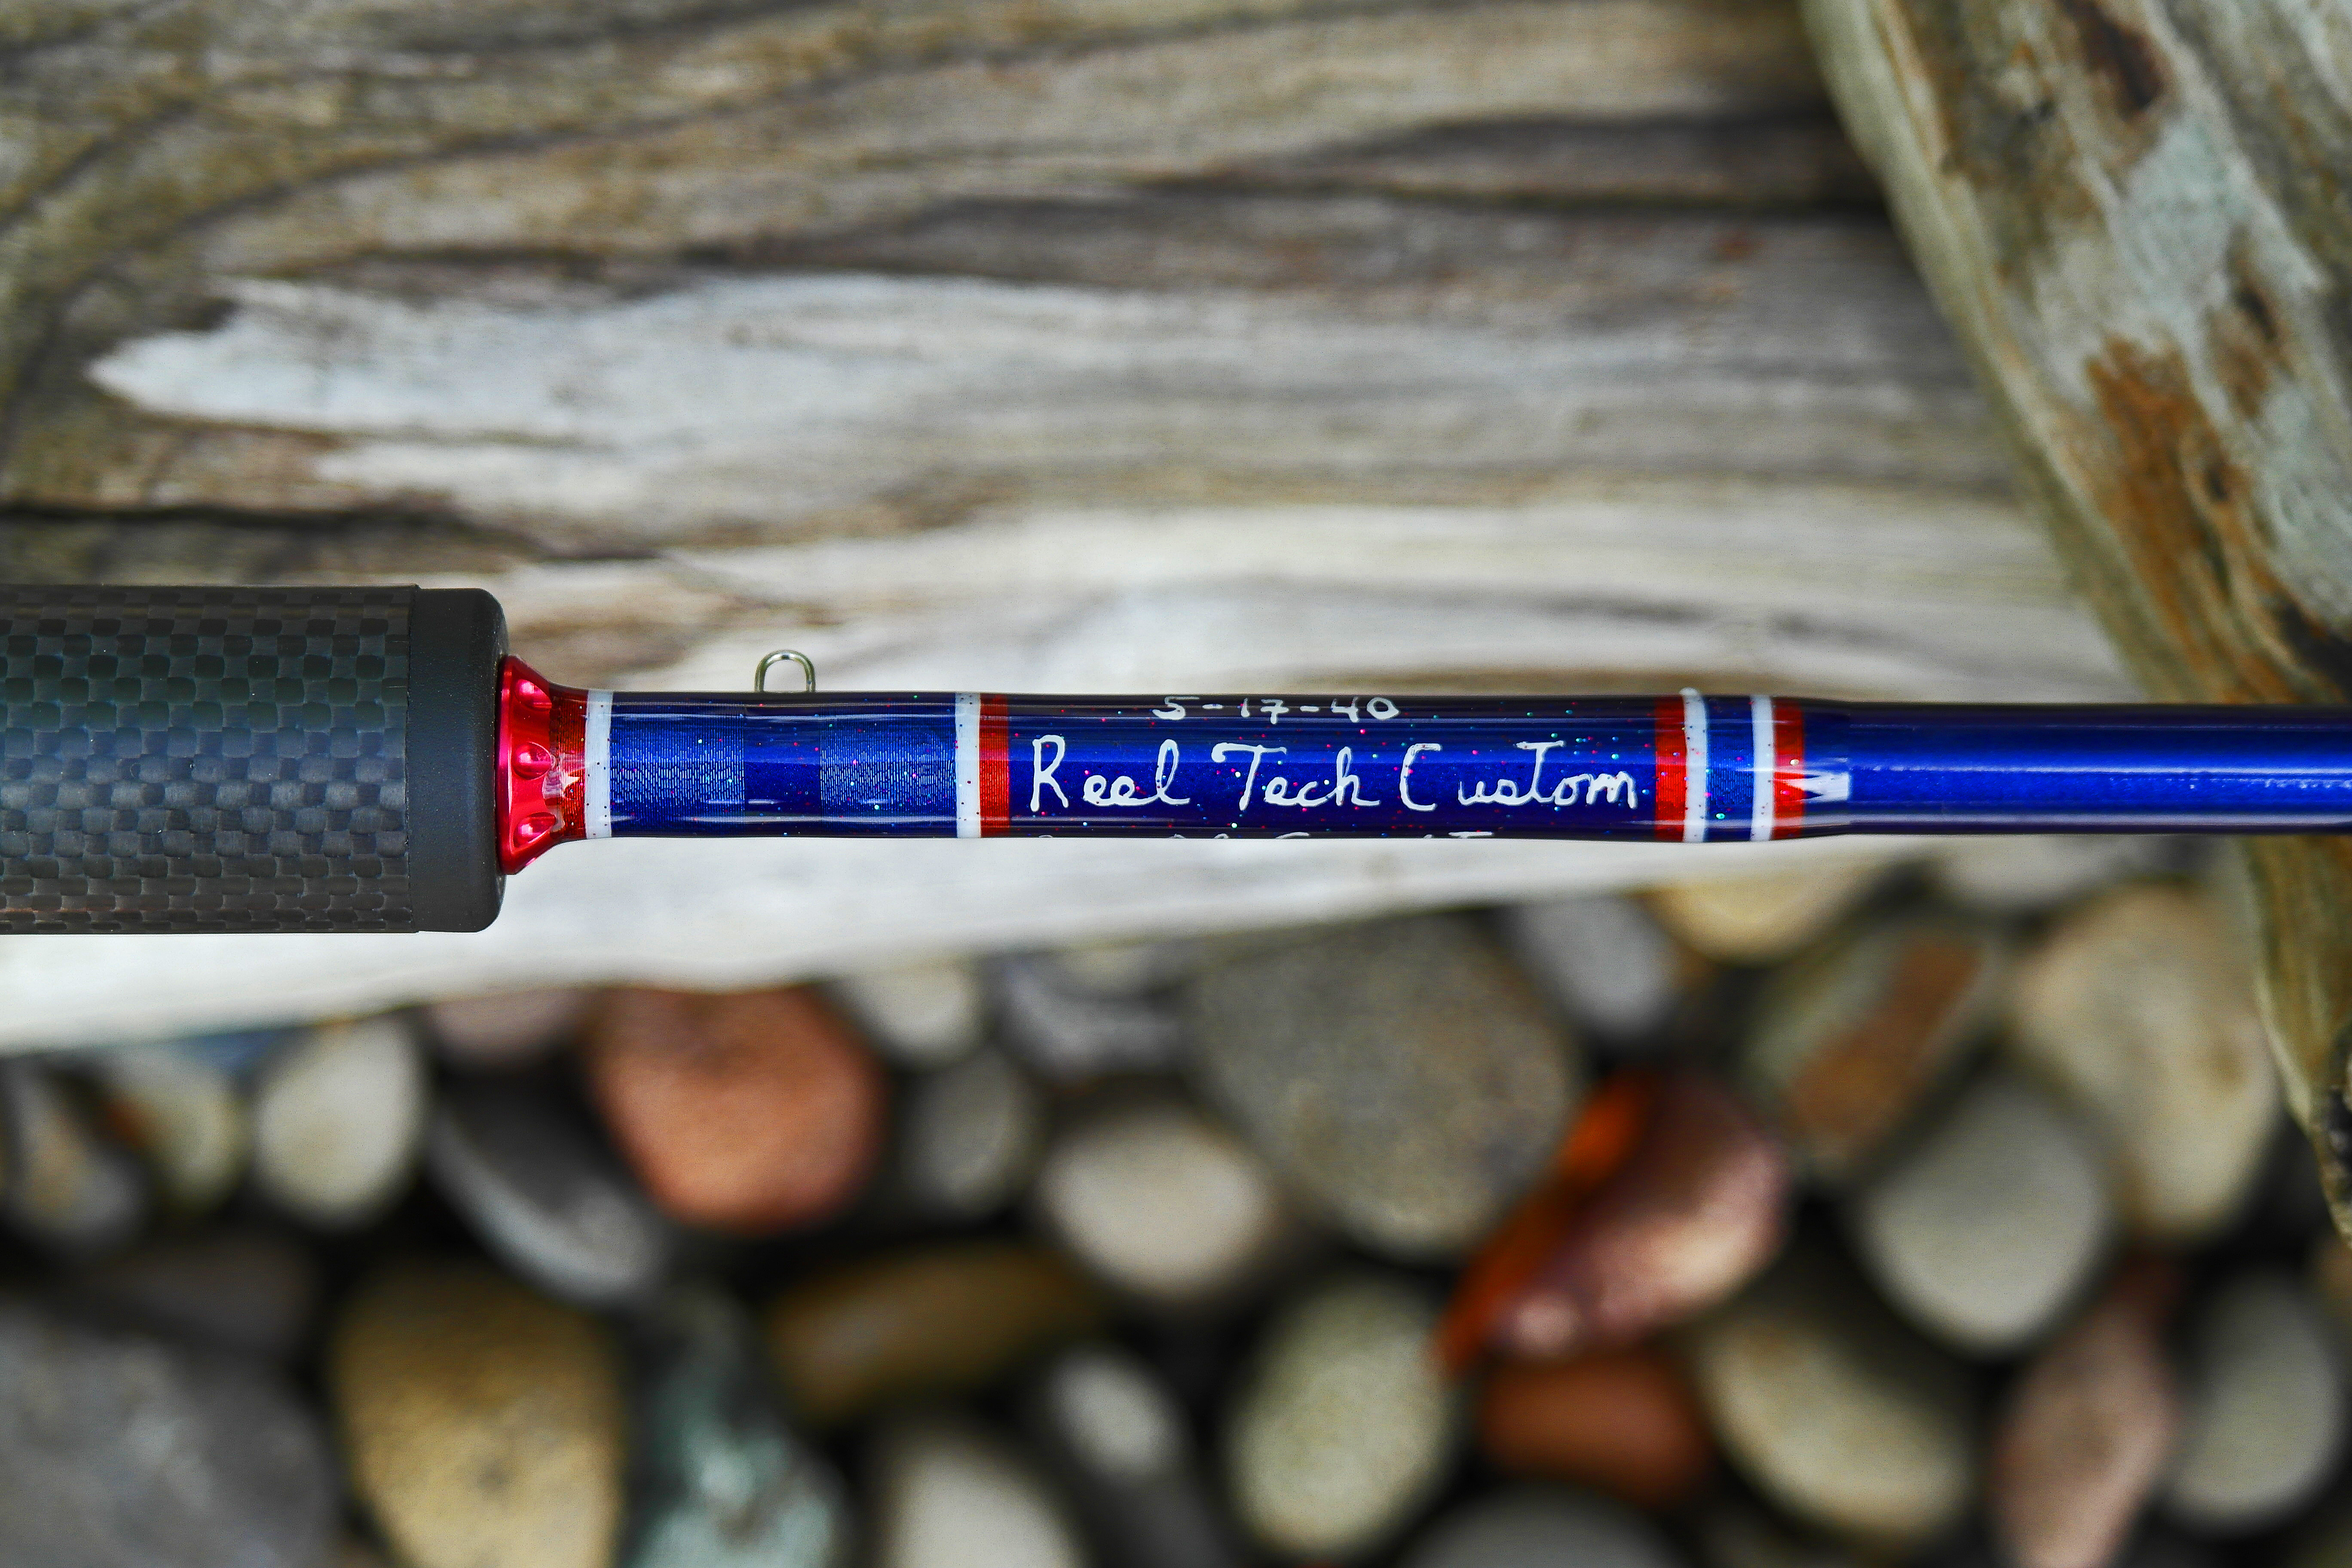 Reel tech custom rods stunning patriotic custom www for Personalized fishing rods